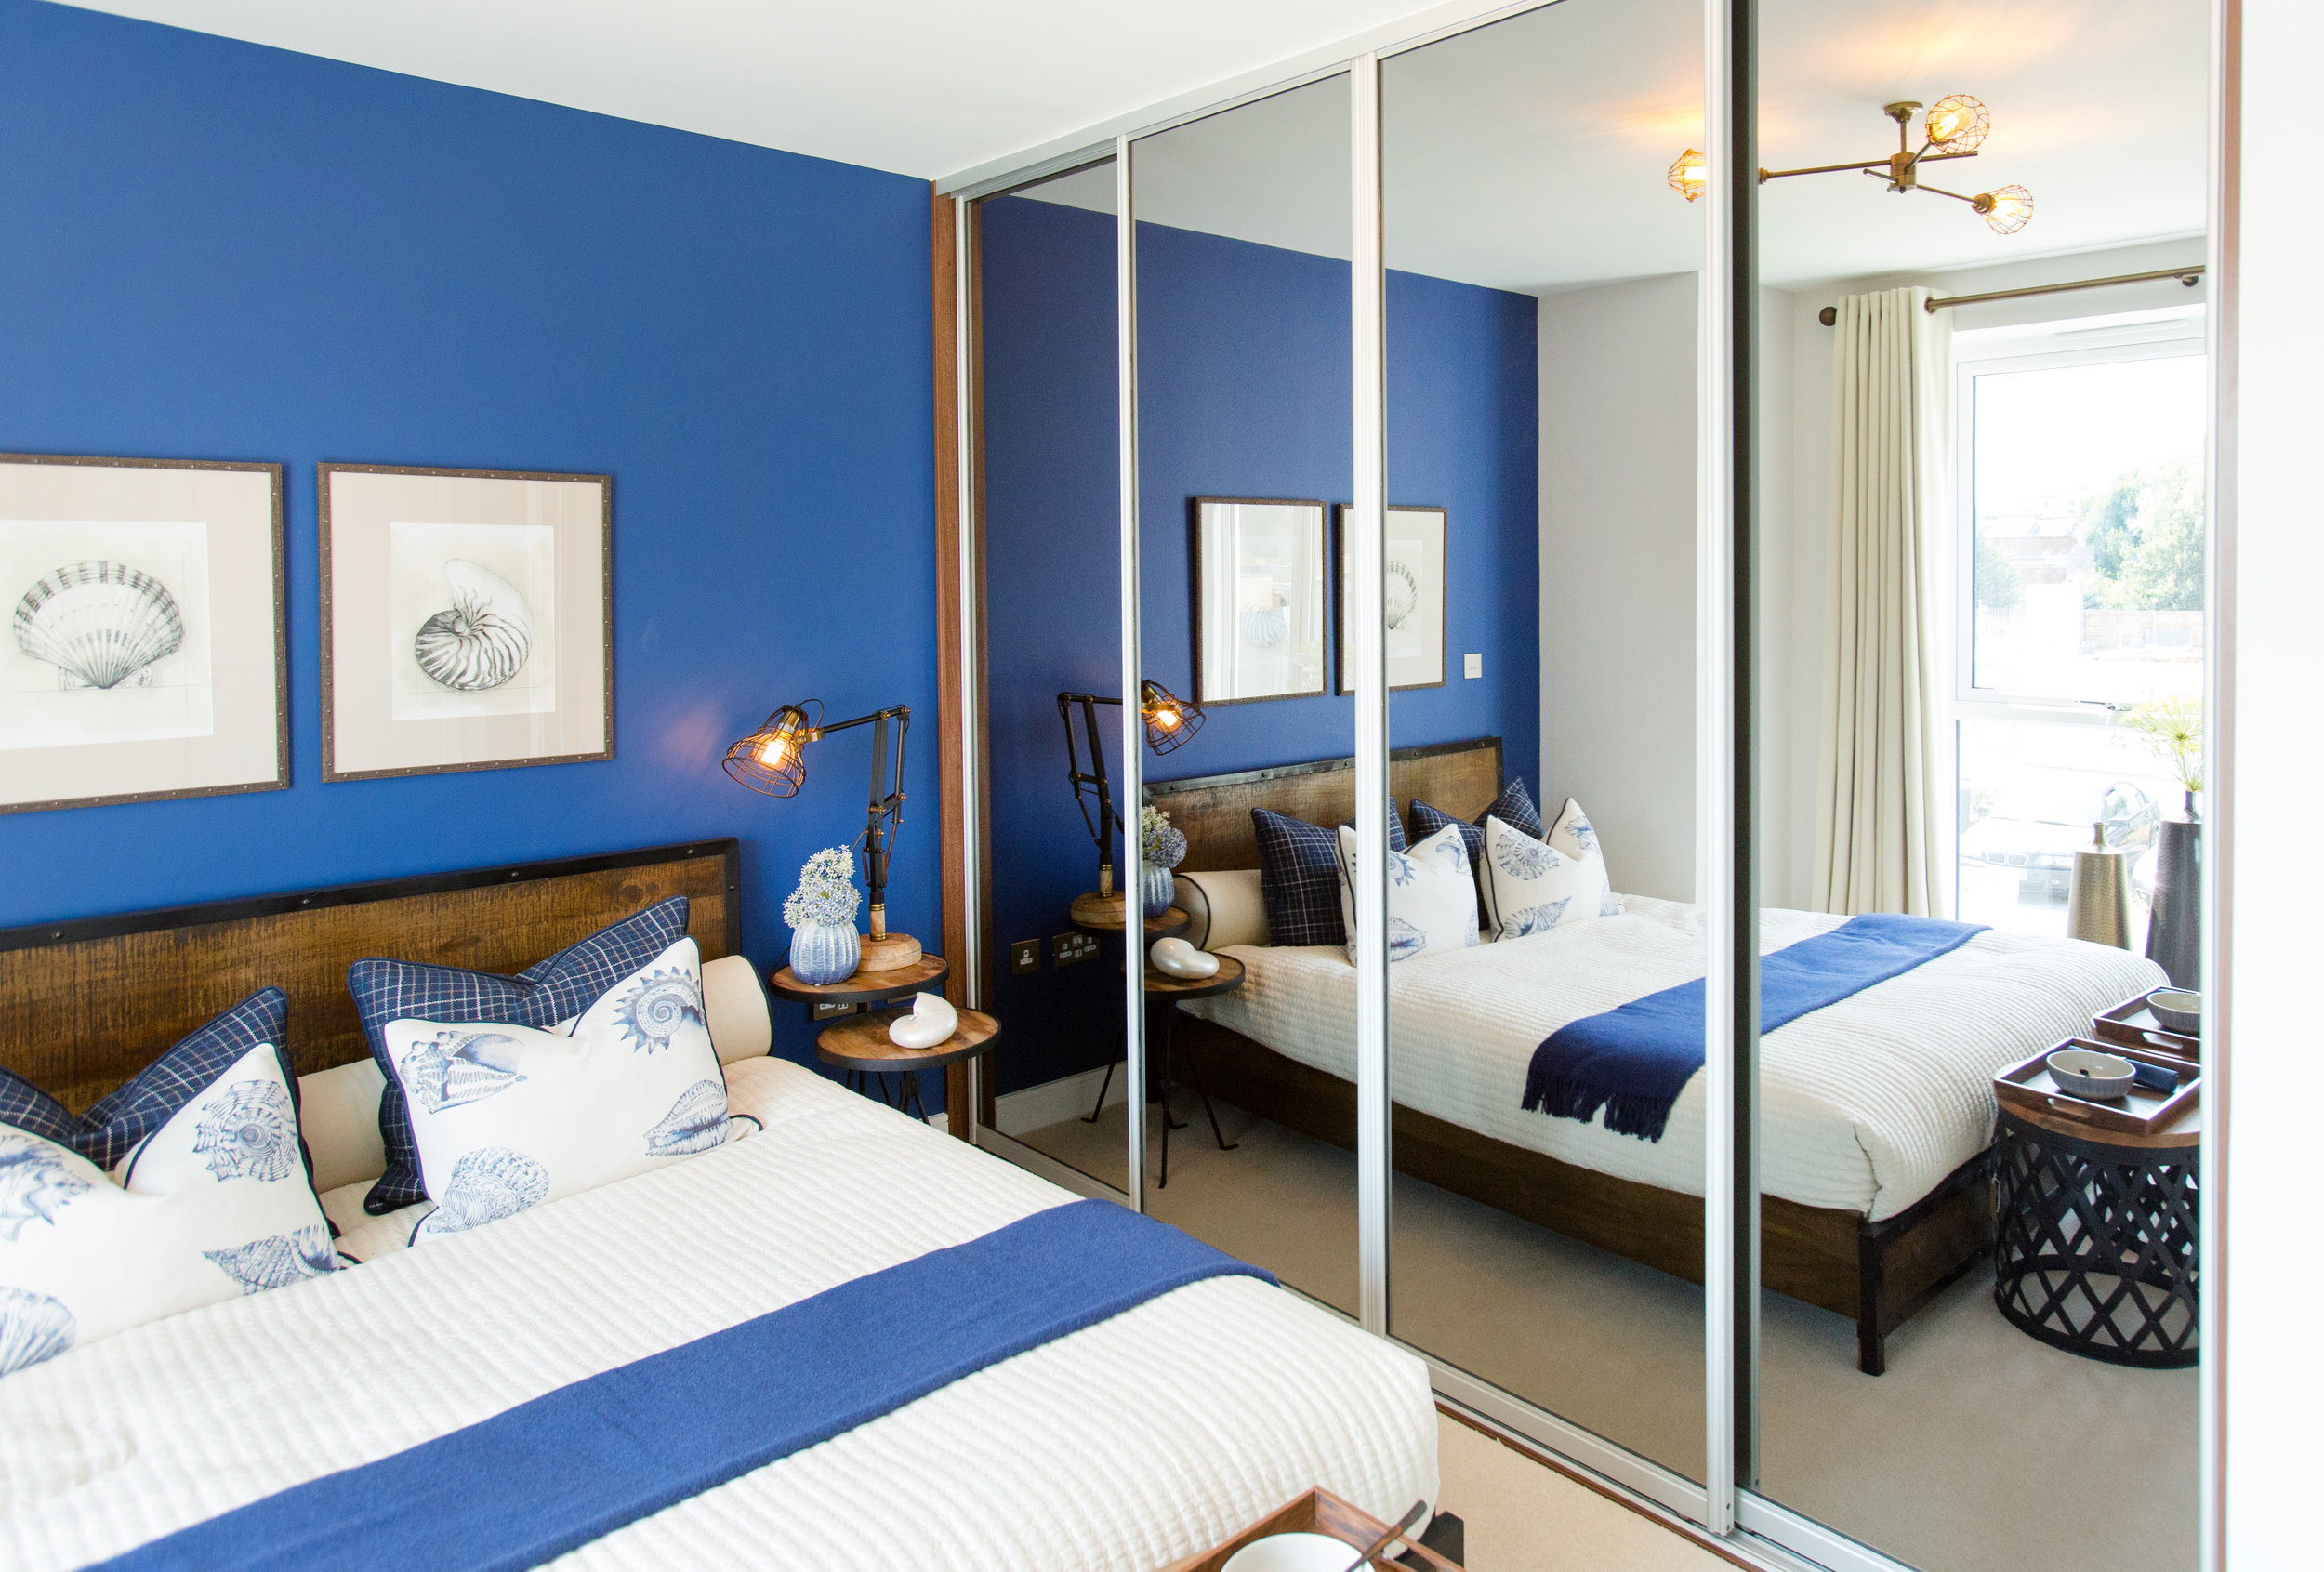 Dress your showhome master bedroom to impress with sliding wardrobes from Global Doors.